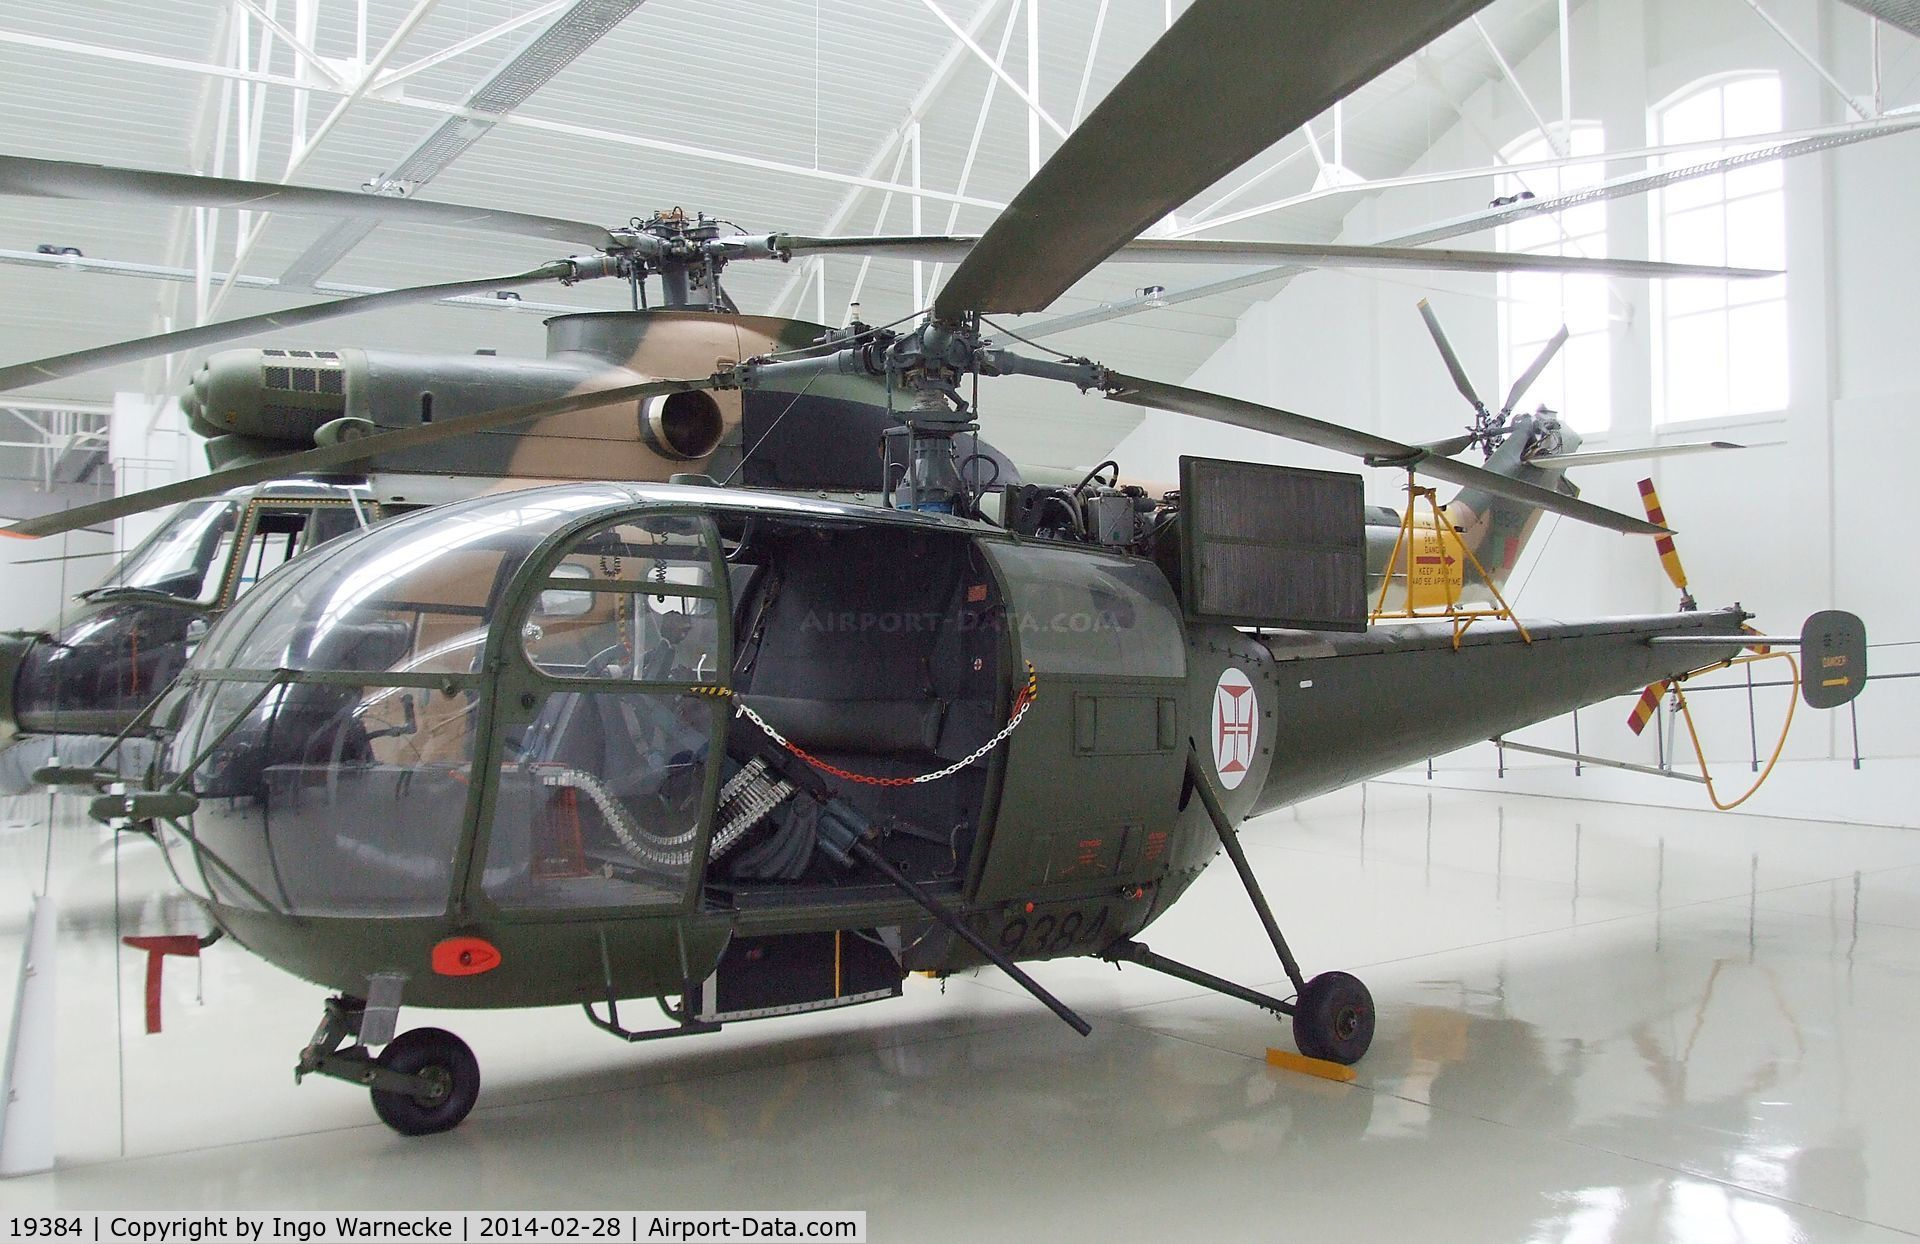 19384, Sud Aviation SE-3160 Alouette III C/N 1855, Sud-Est SE.3160 Alouette III gunship at the Museu do Ar, Sintra